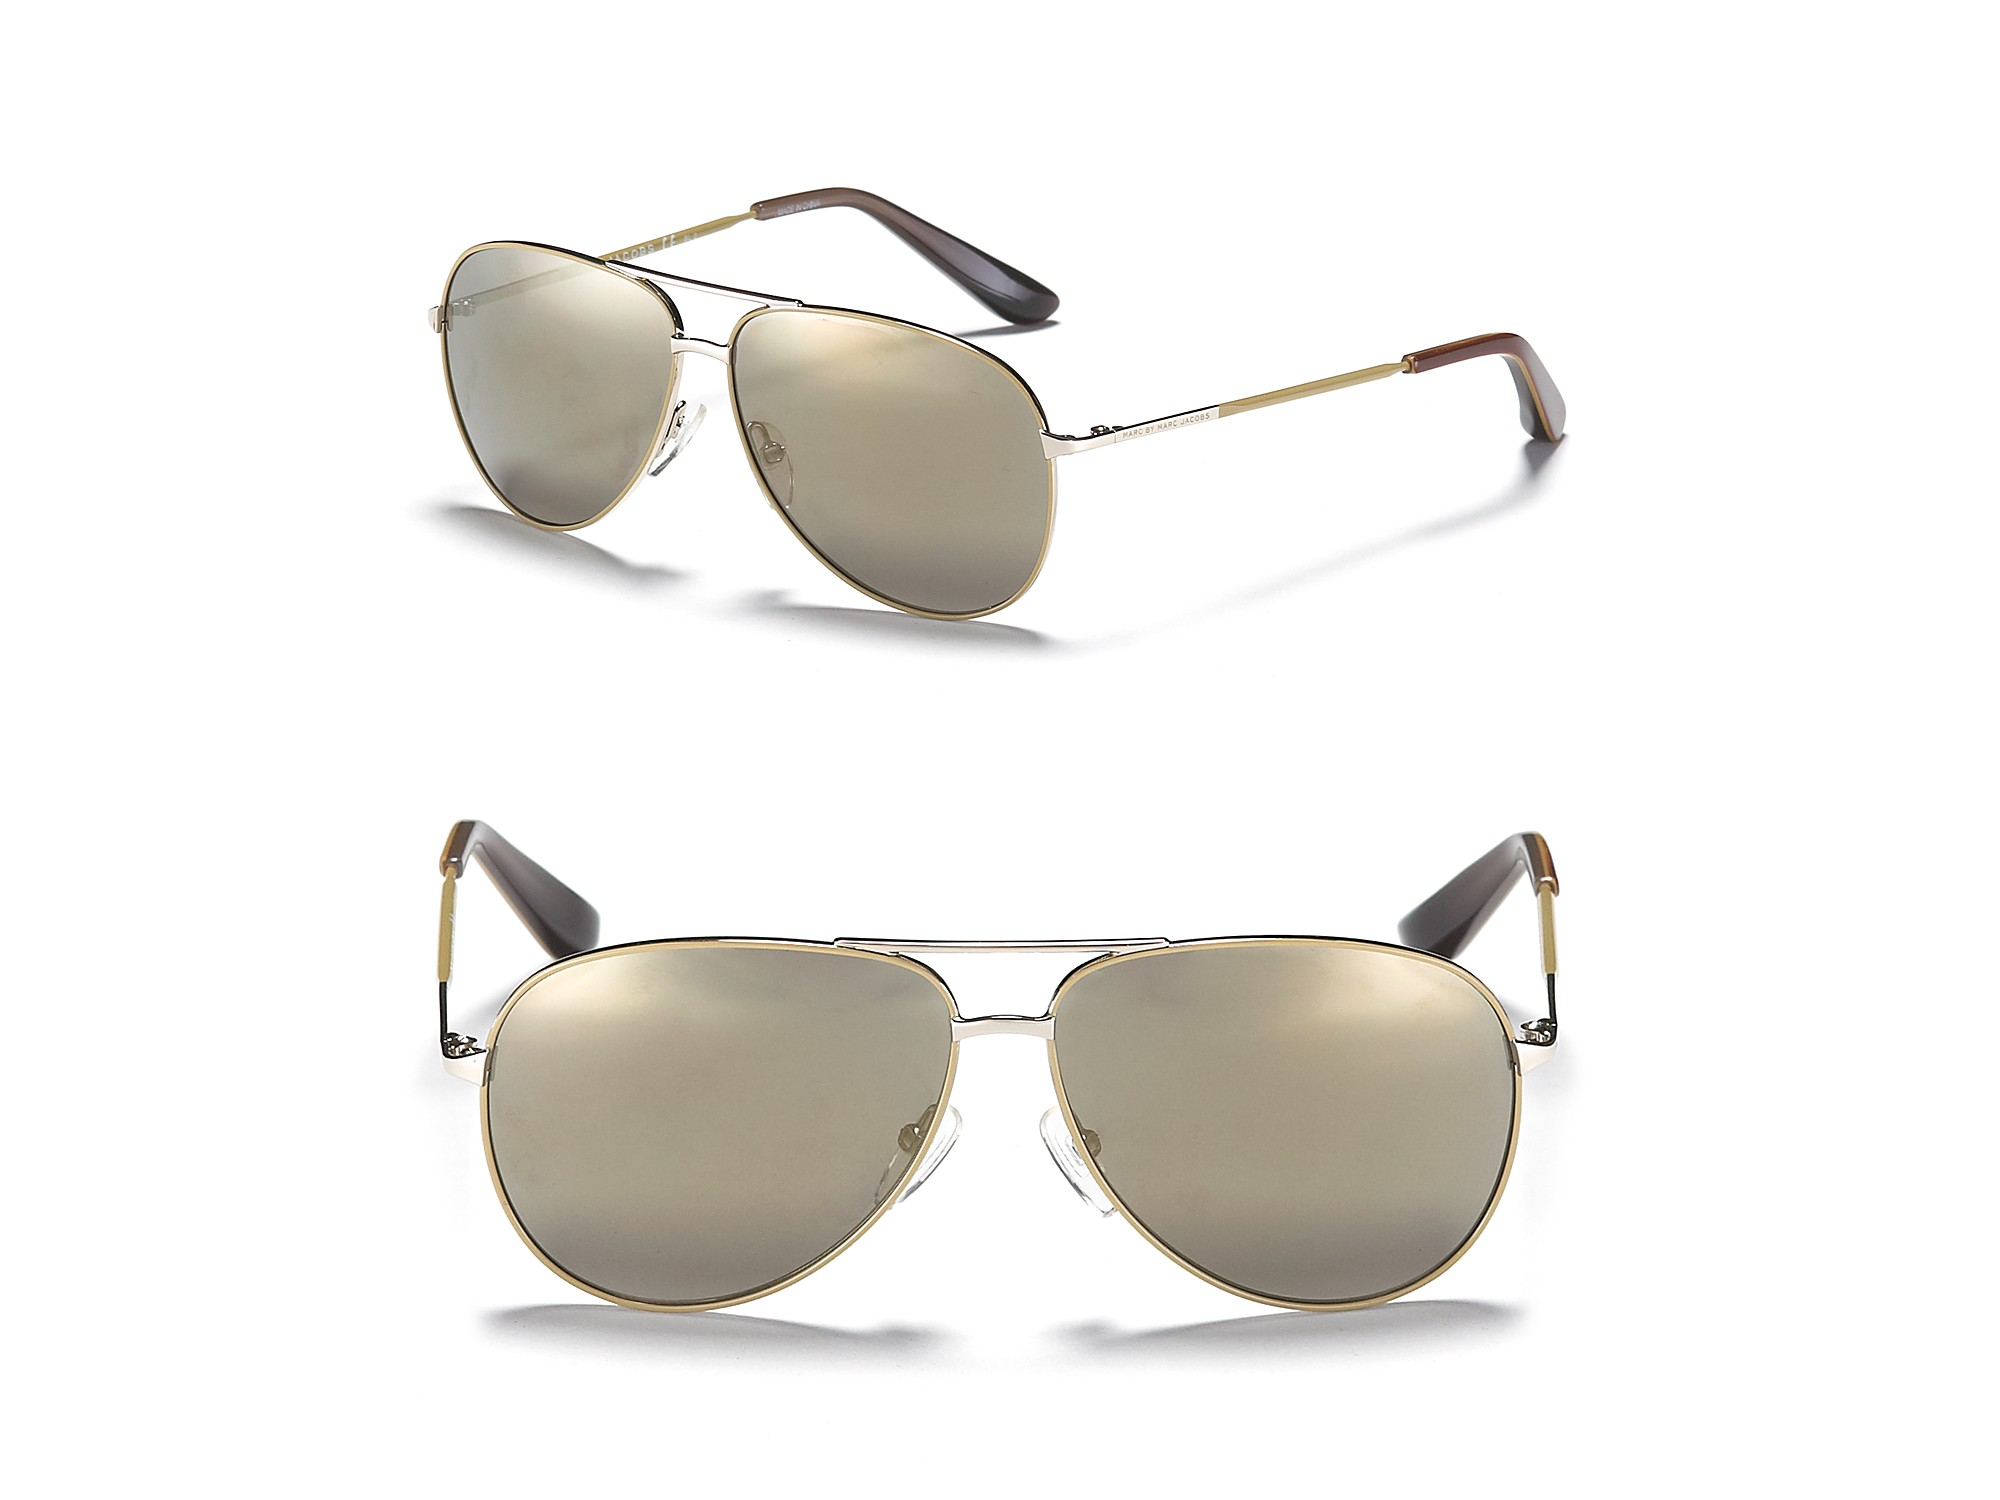 00147c248f Lyst - Marc By Marc Jacobs Small Metal Aviator Sunglasses with ...